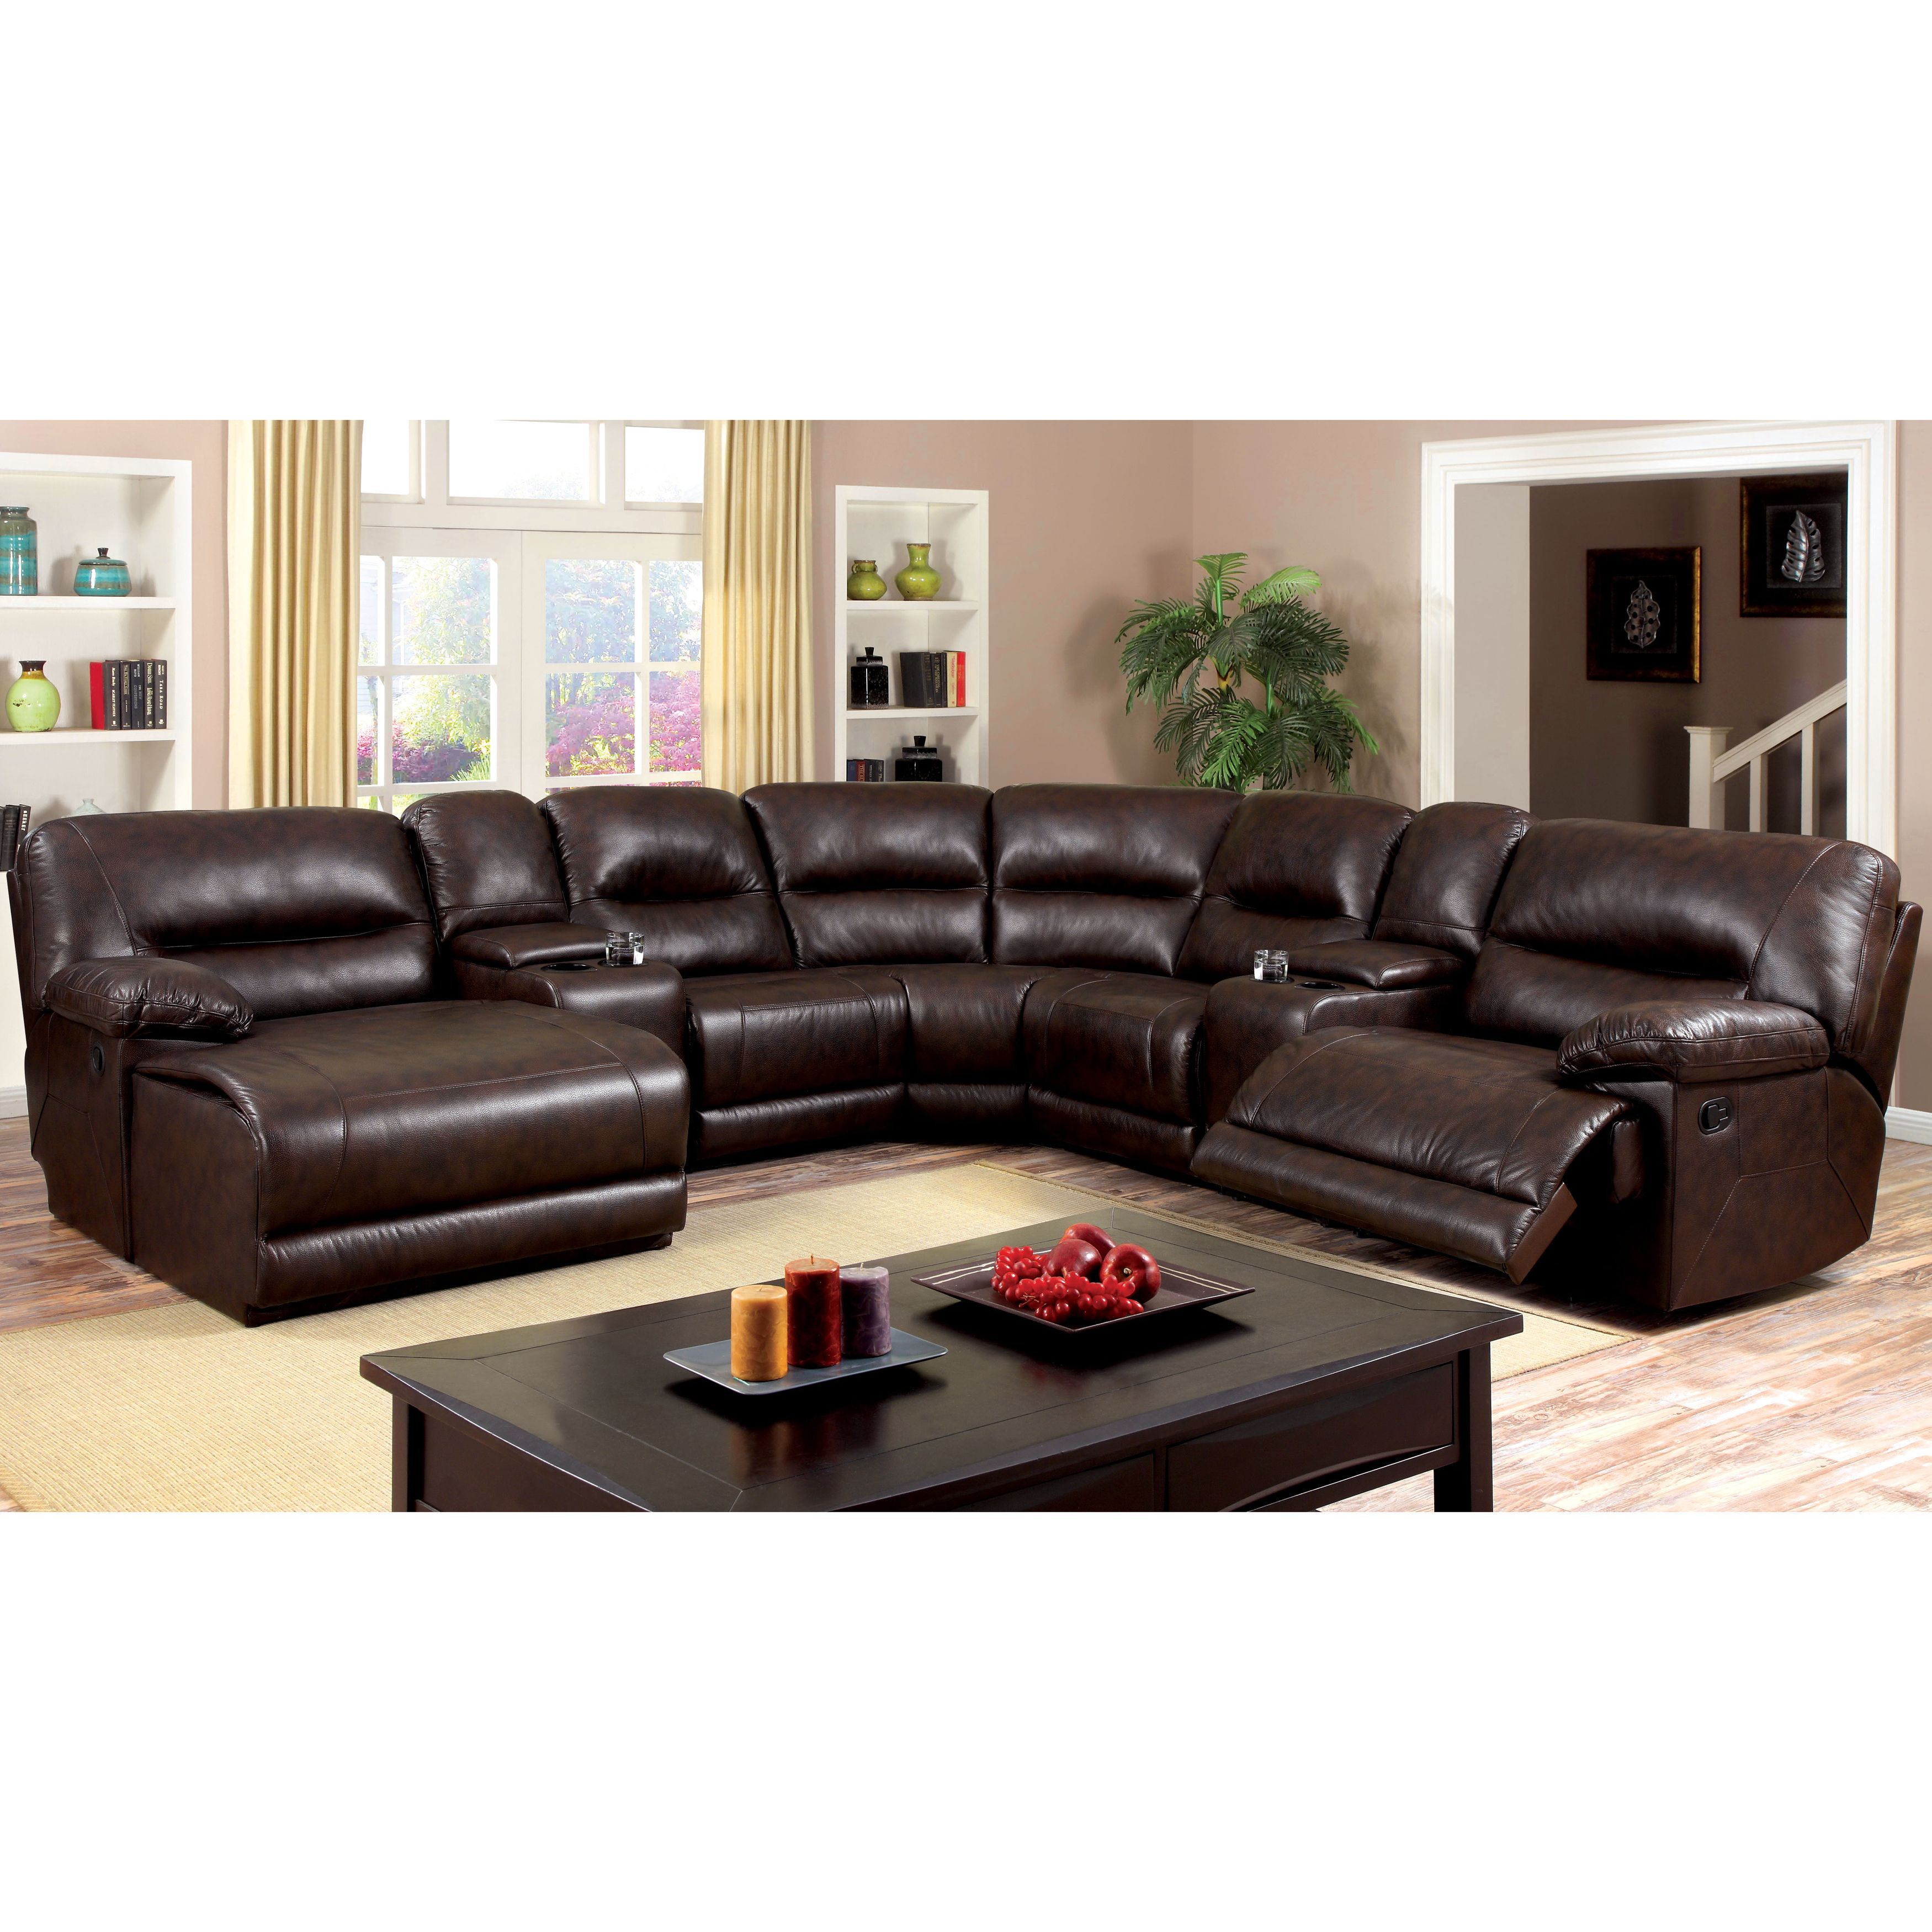 Furniture of America Tennor Bonded Leather Theatre Sectional